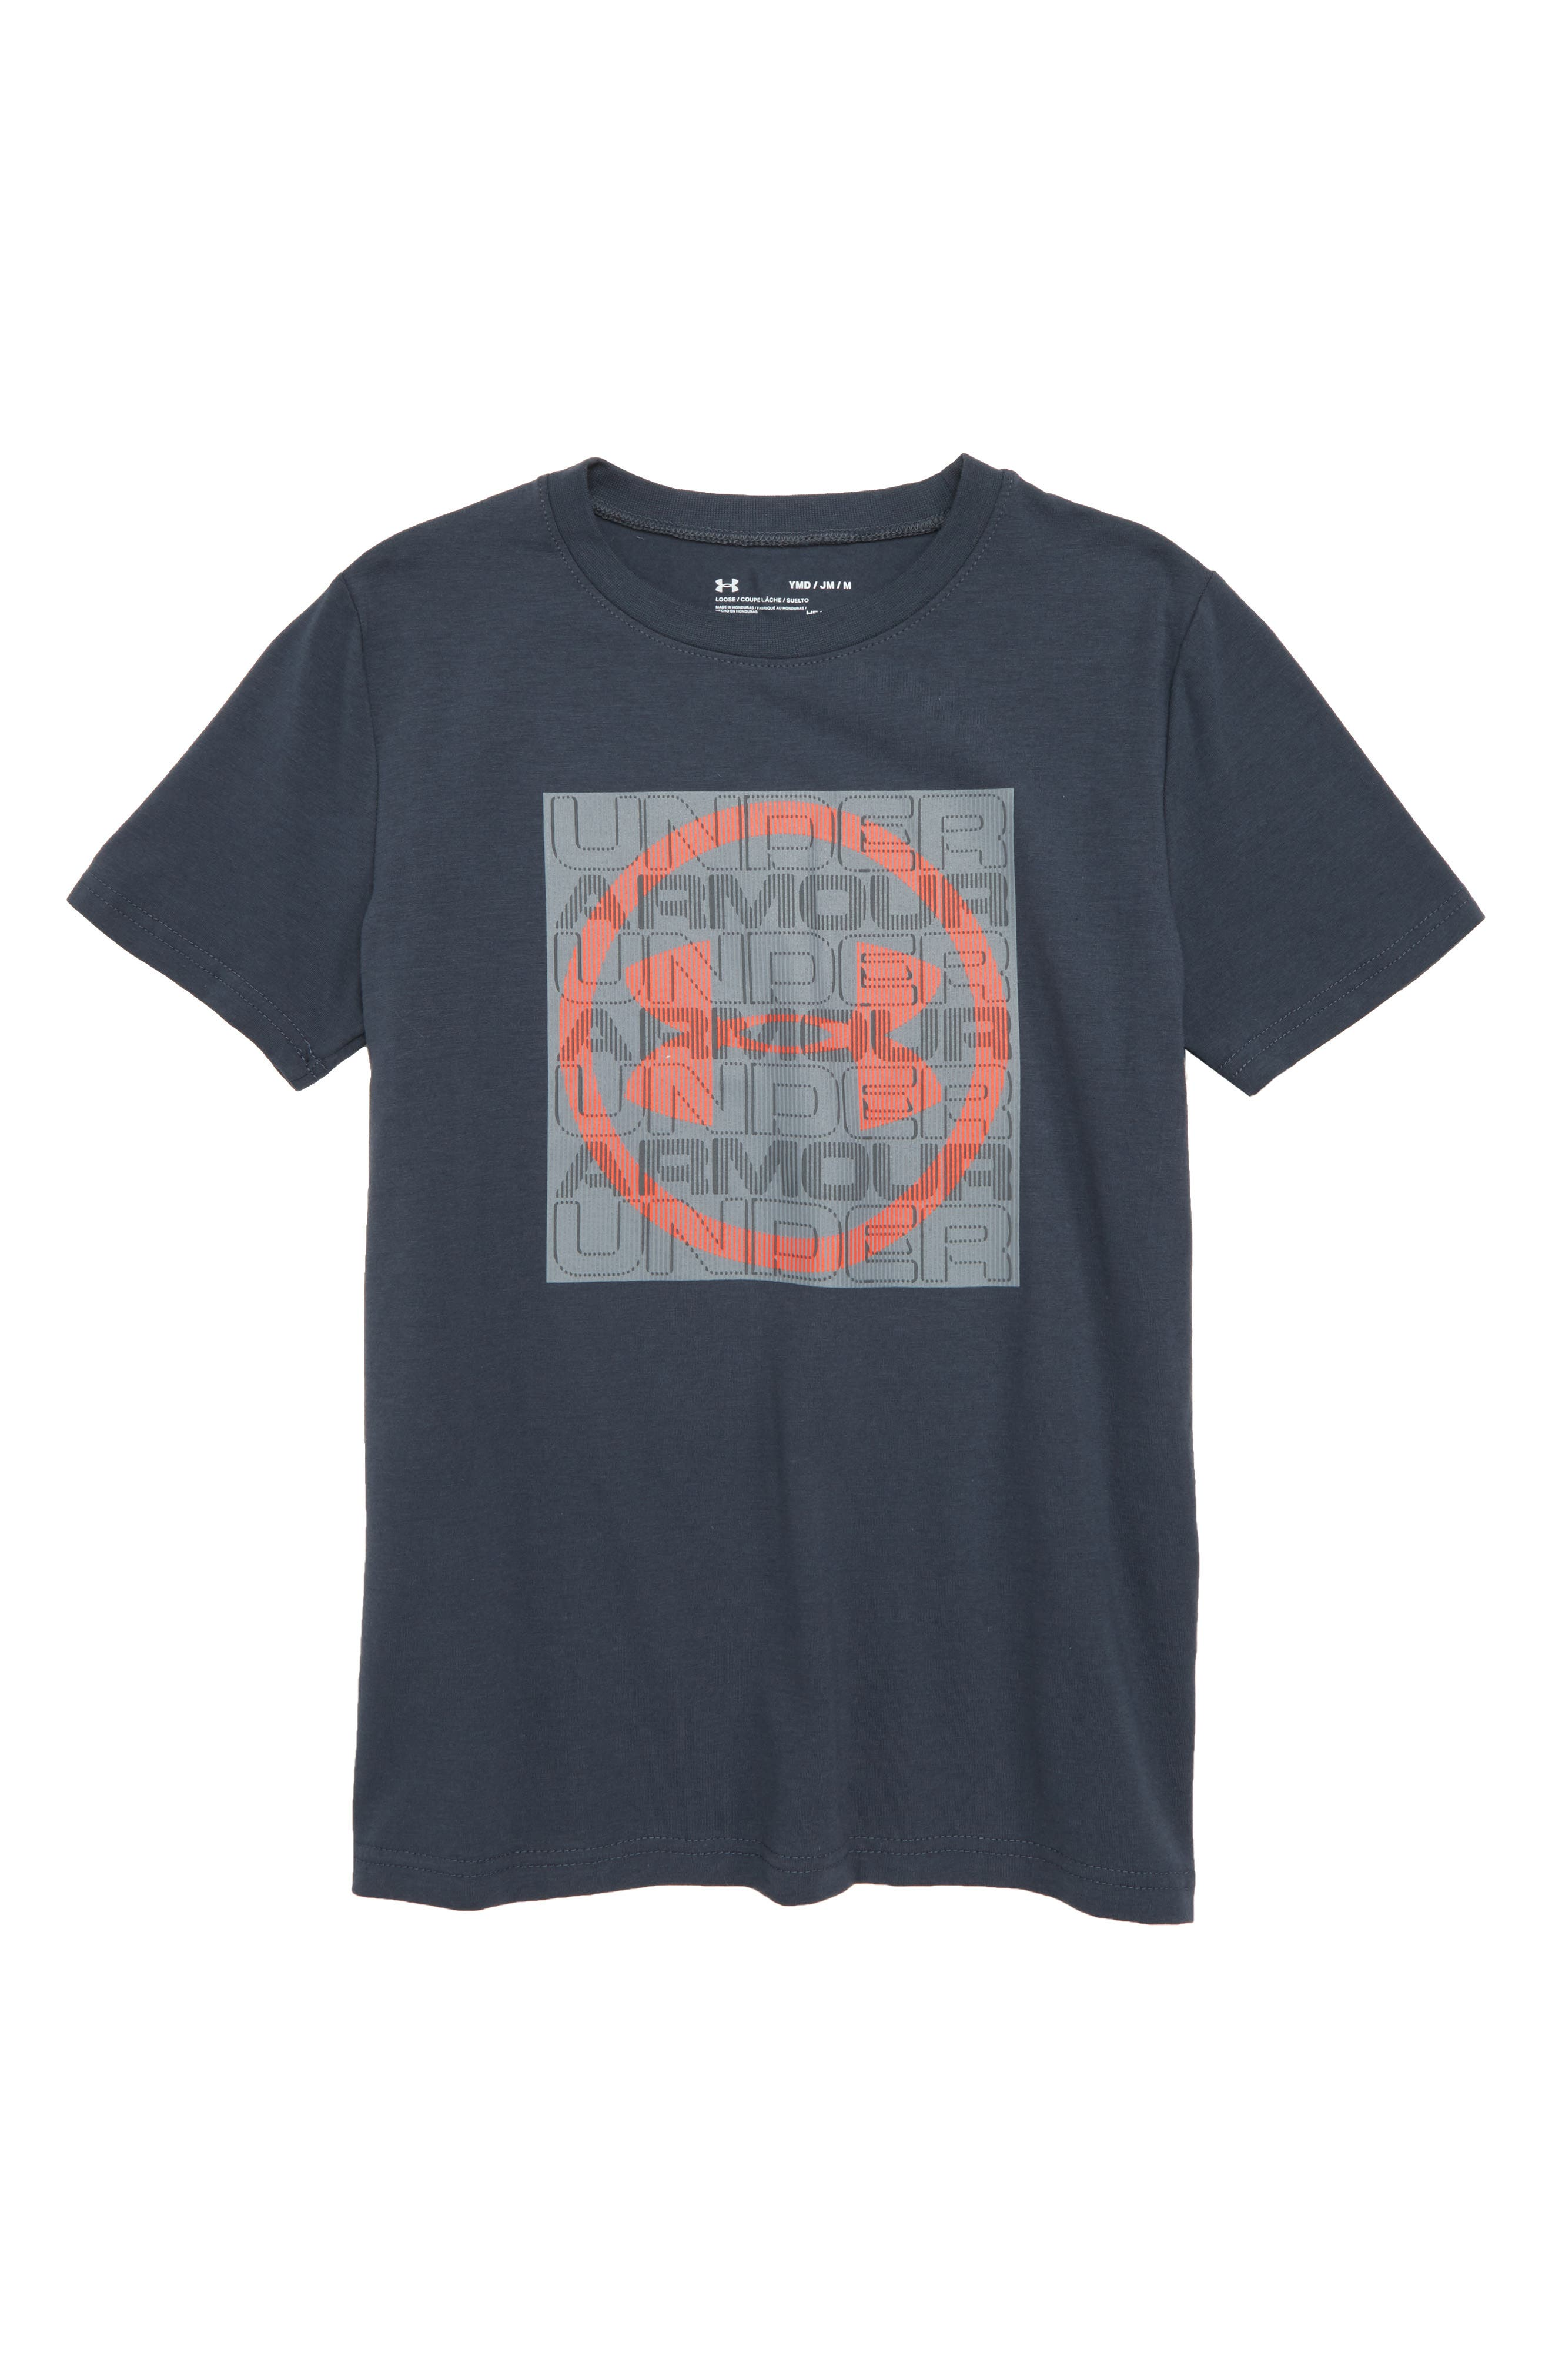 Visualogo T-Shirt,                         Main,                         color, Stealth Gray/ Neon Coral